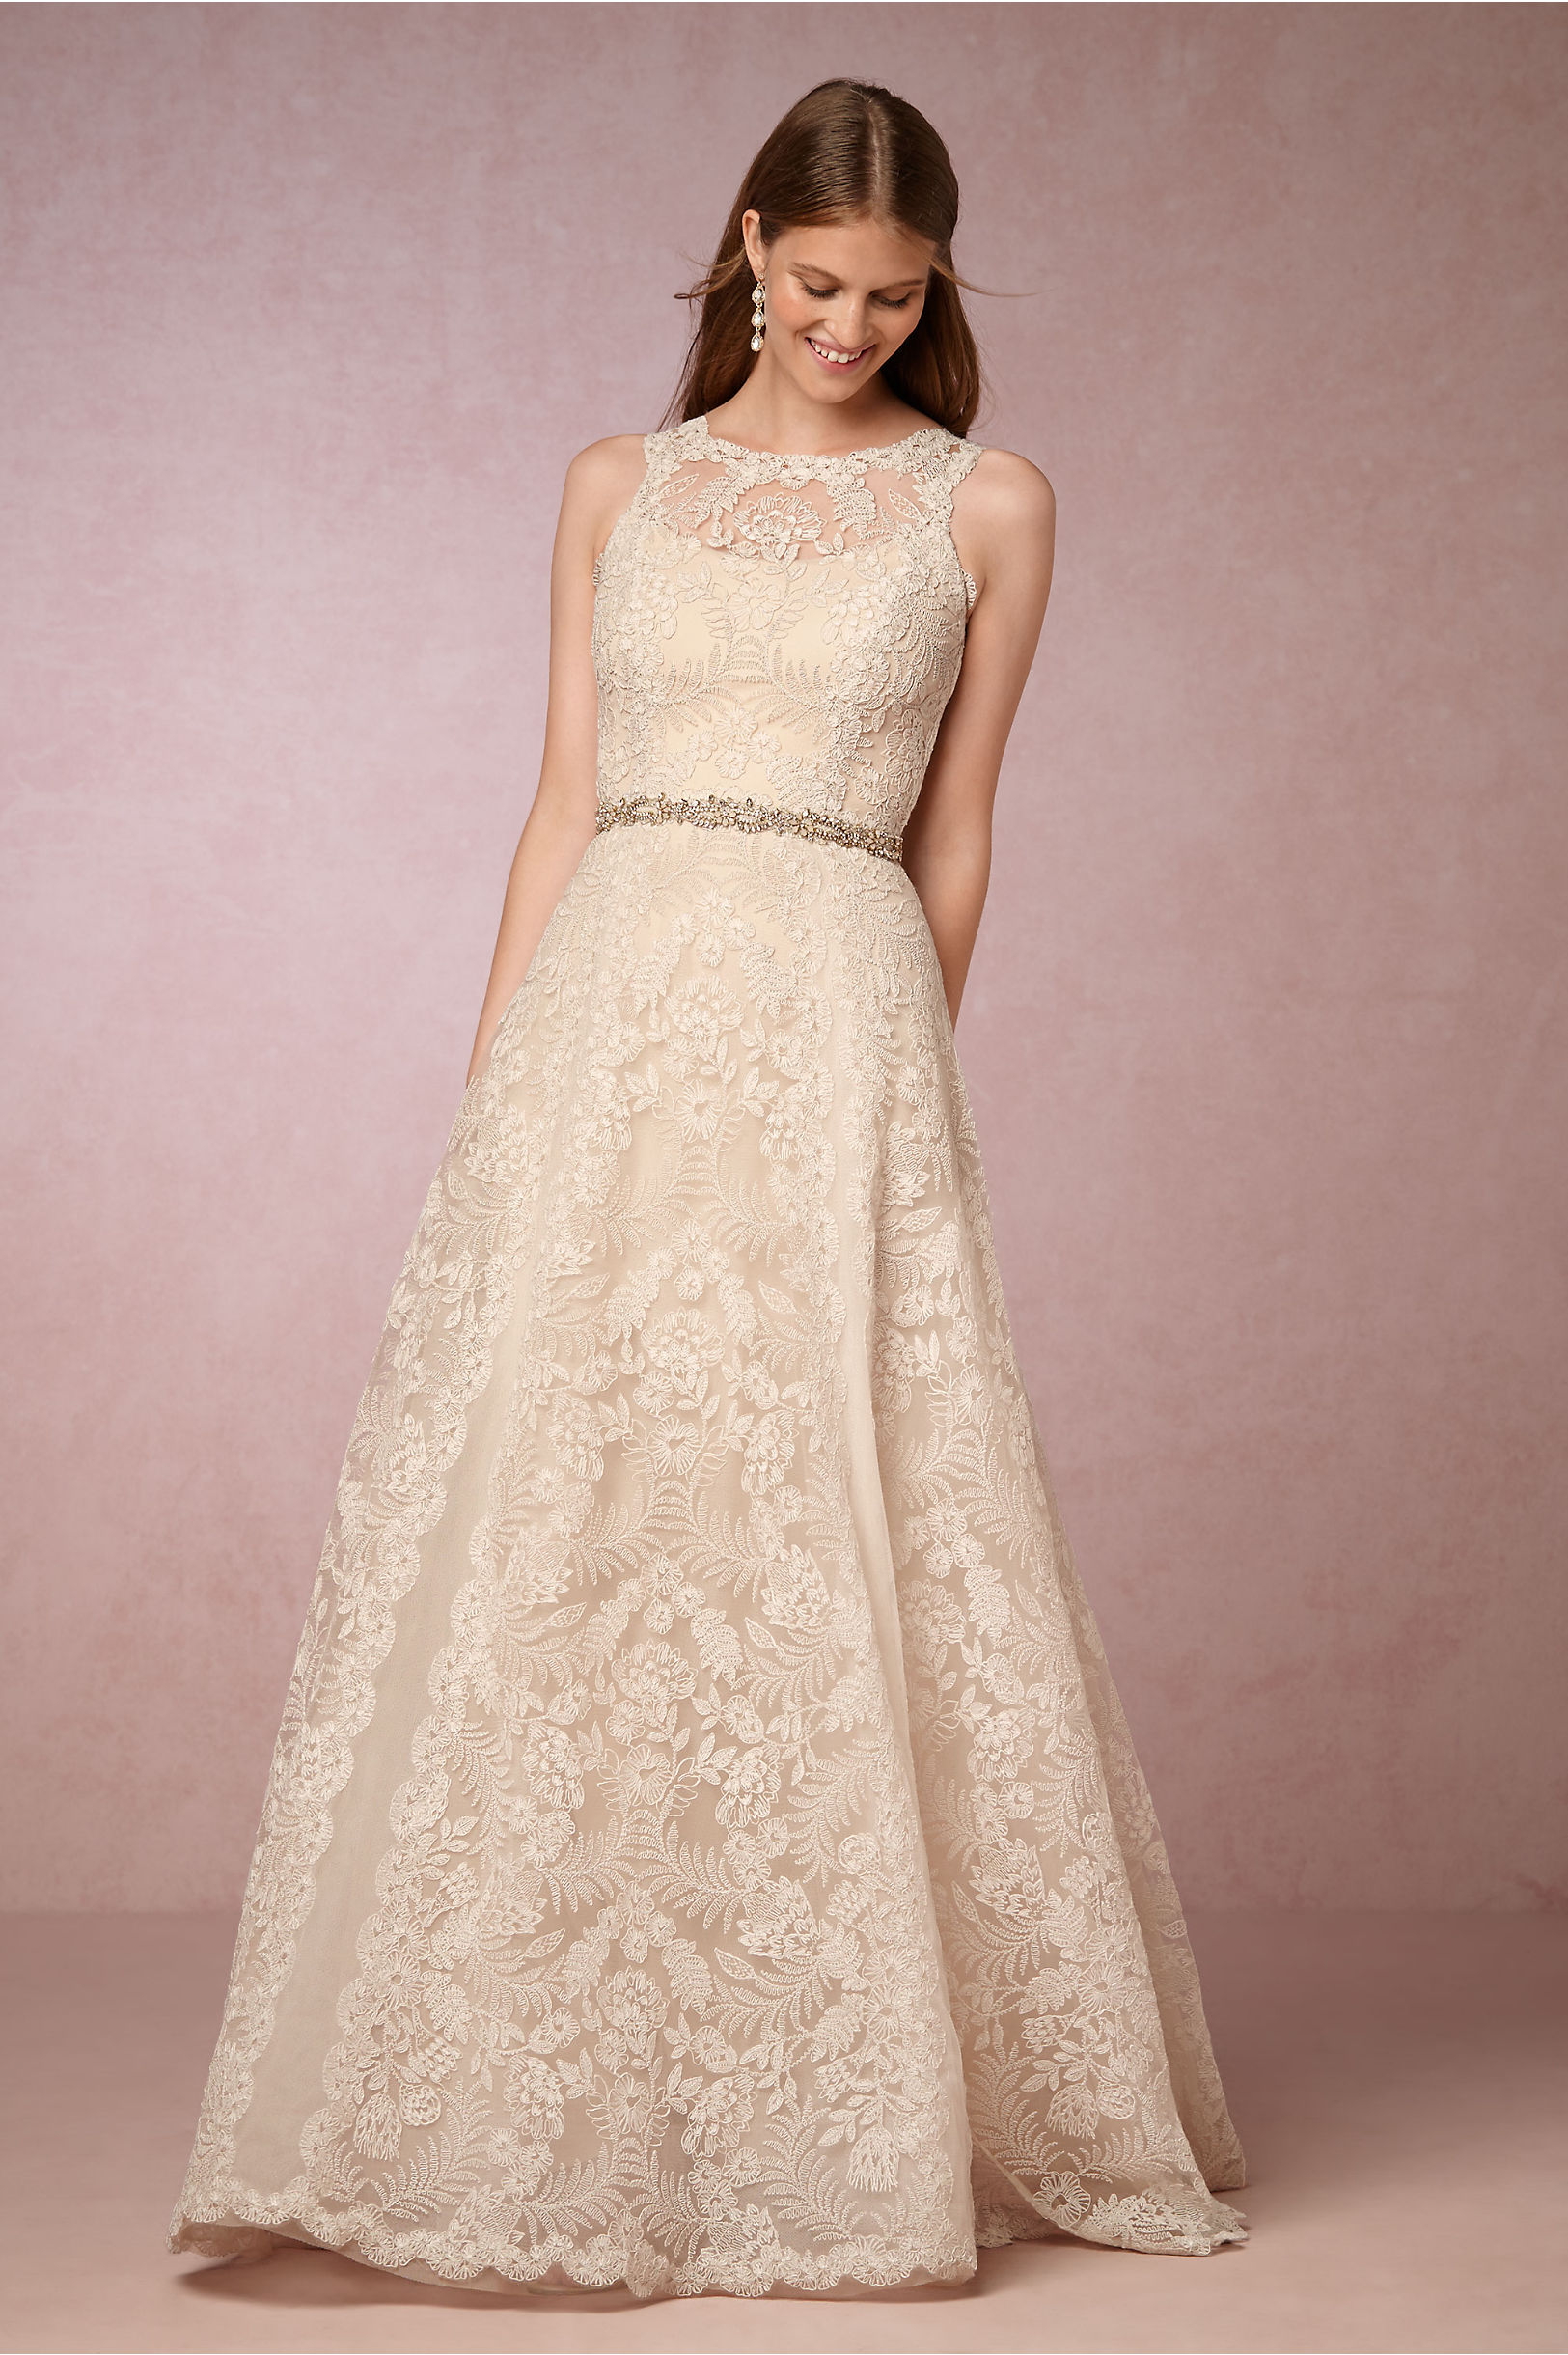 Lyra Gown in Sale | BHLDN